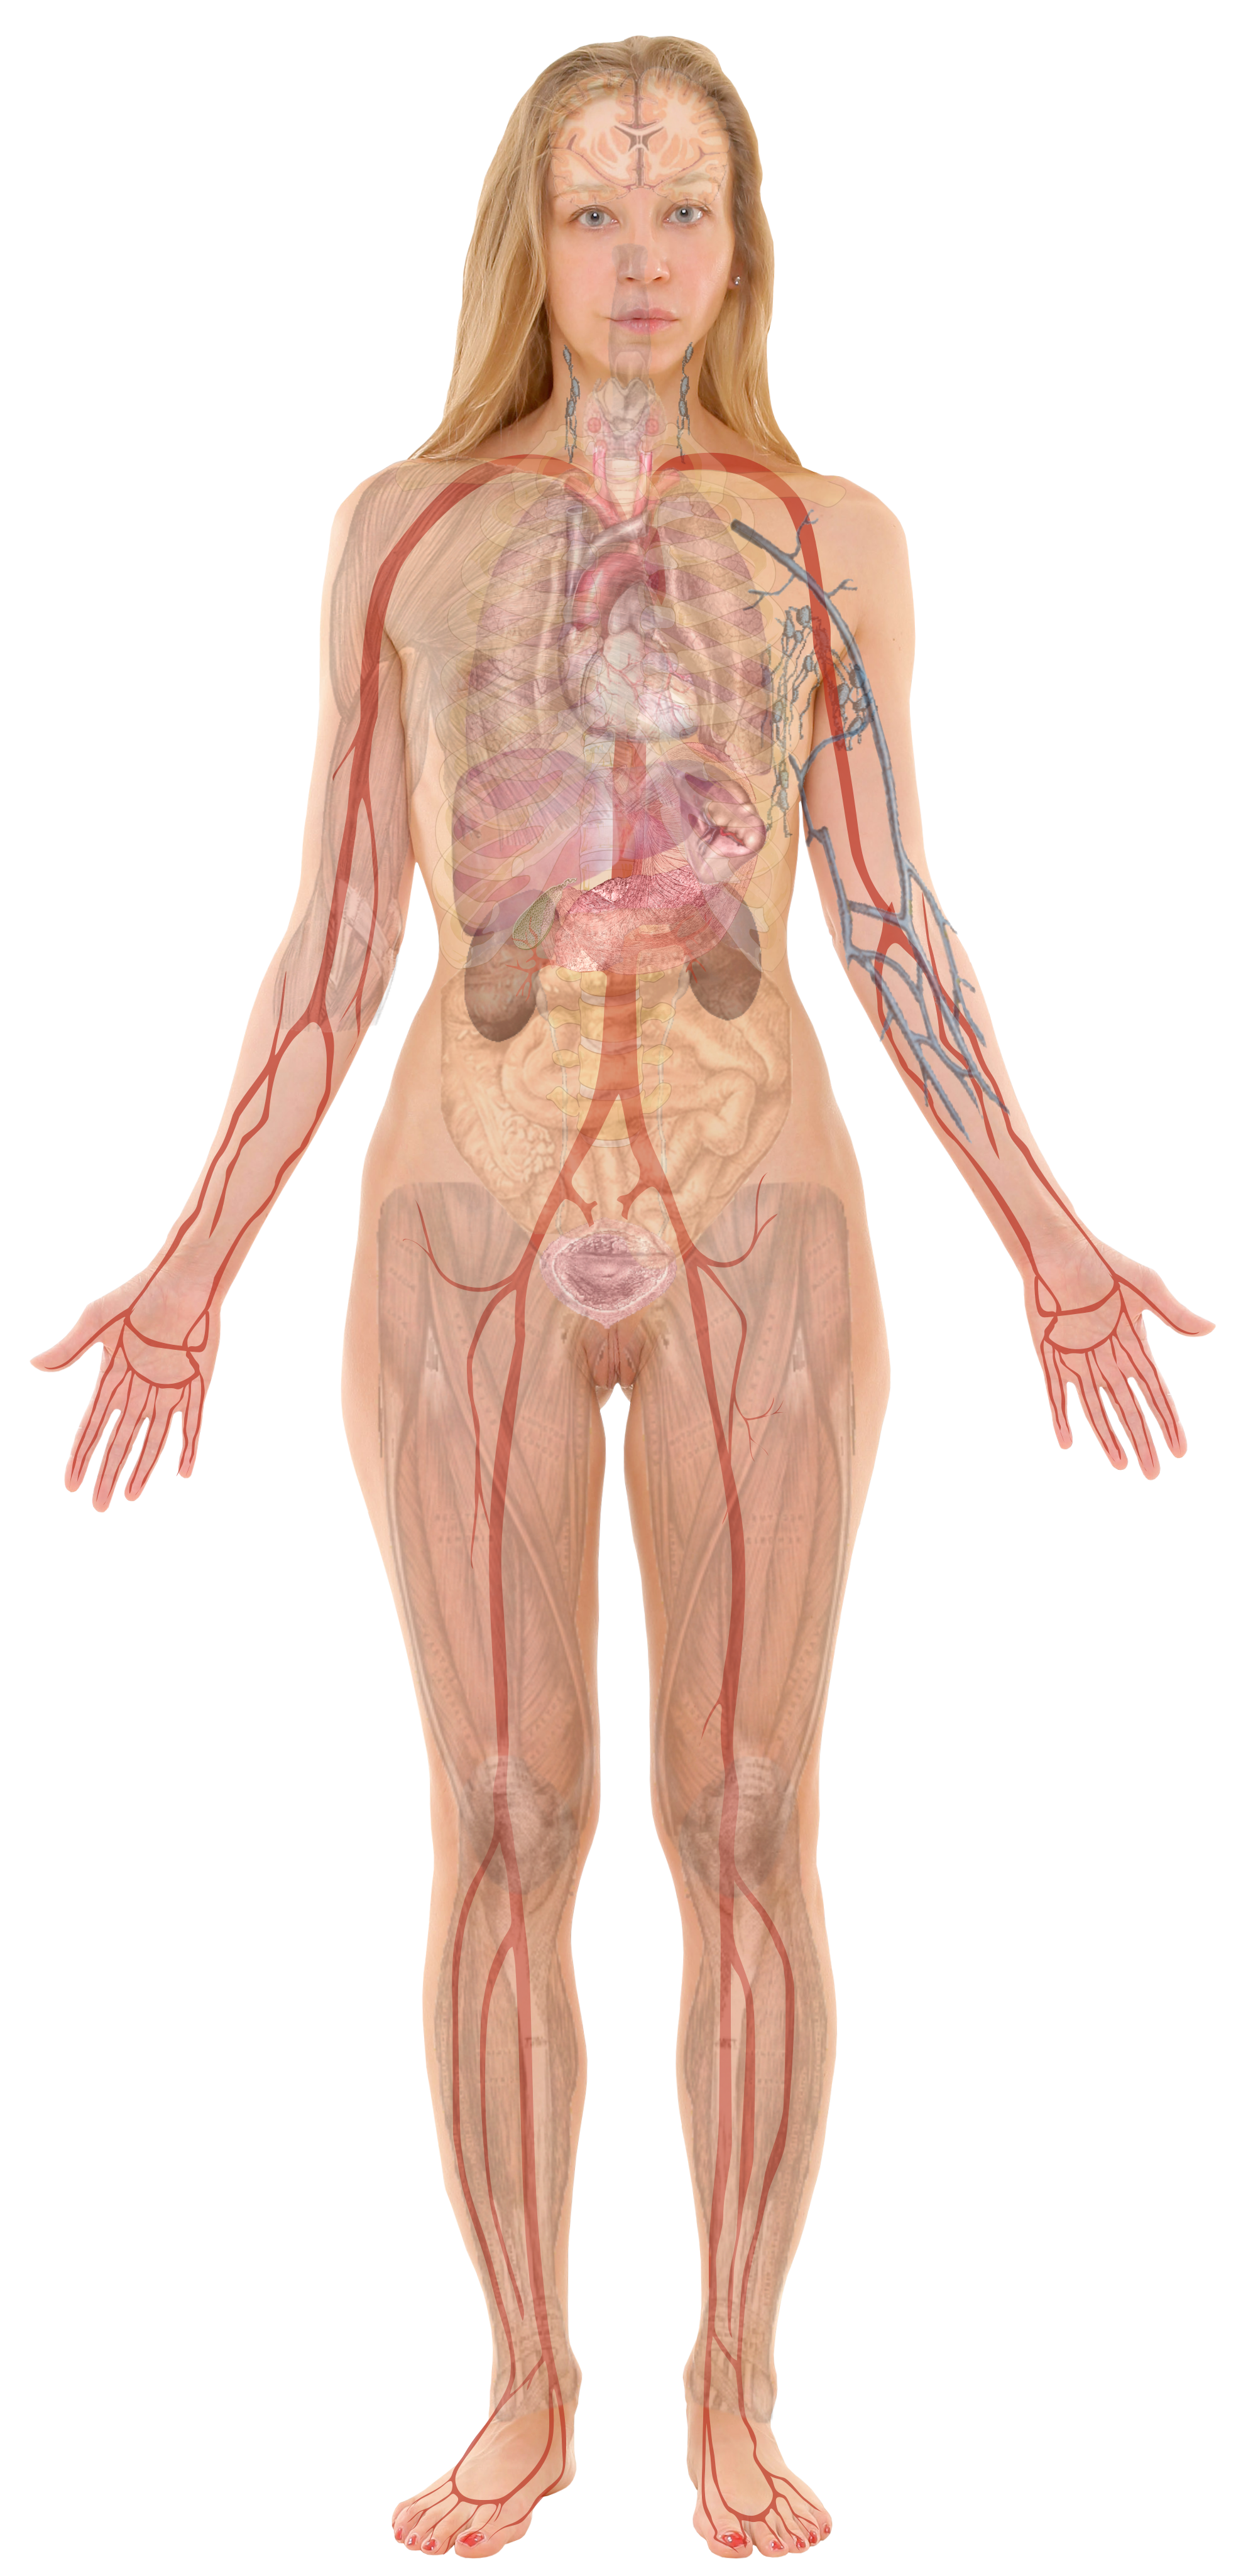 File:Female with organs.png - Wikimedia Commons